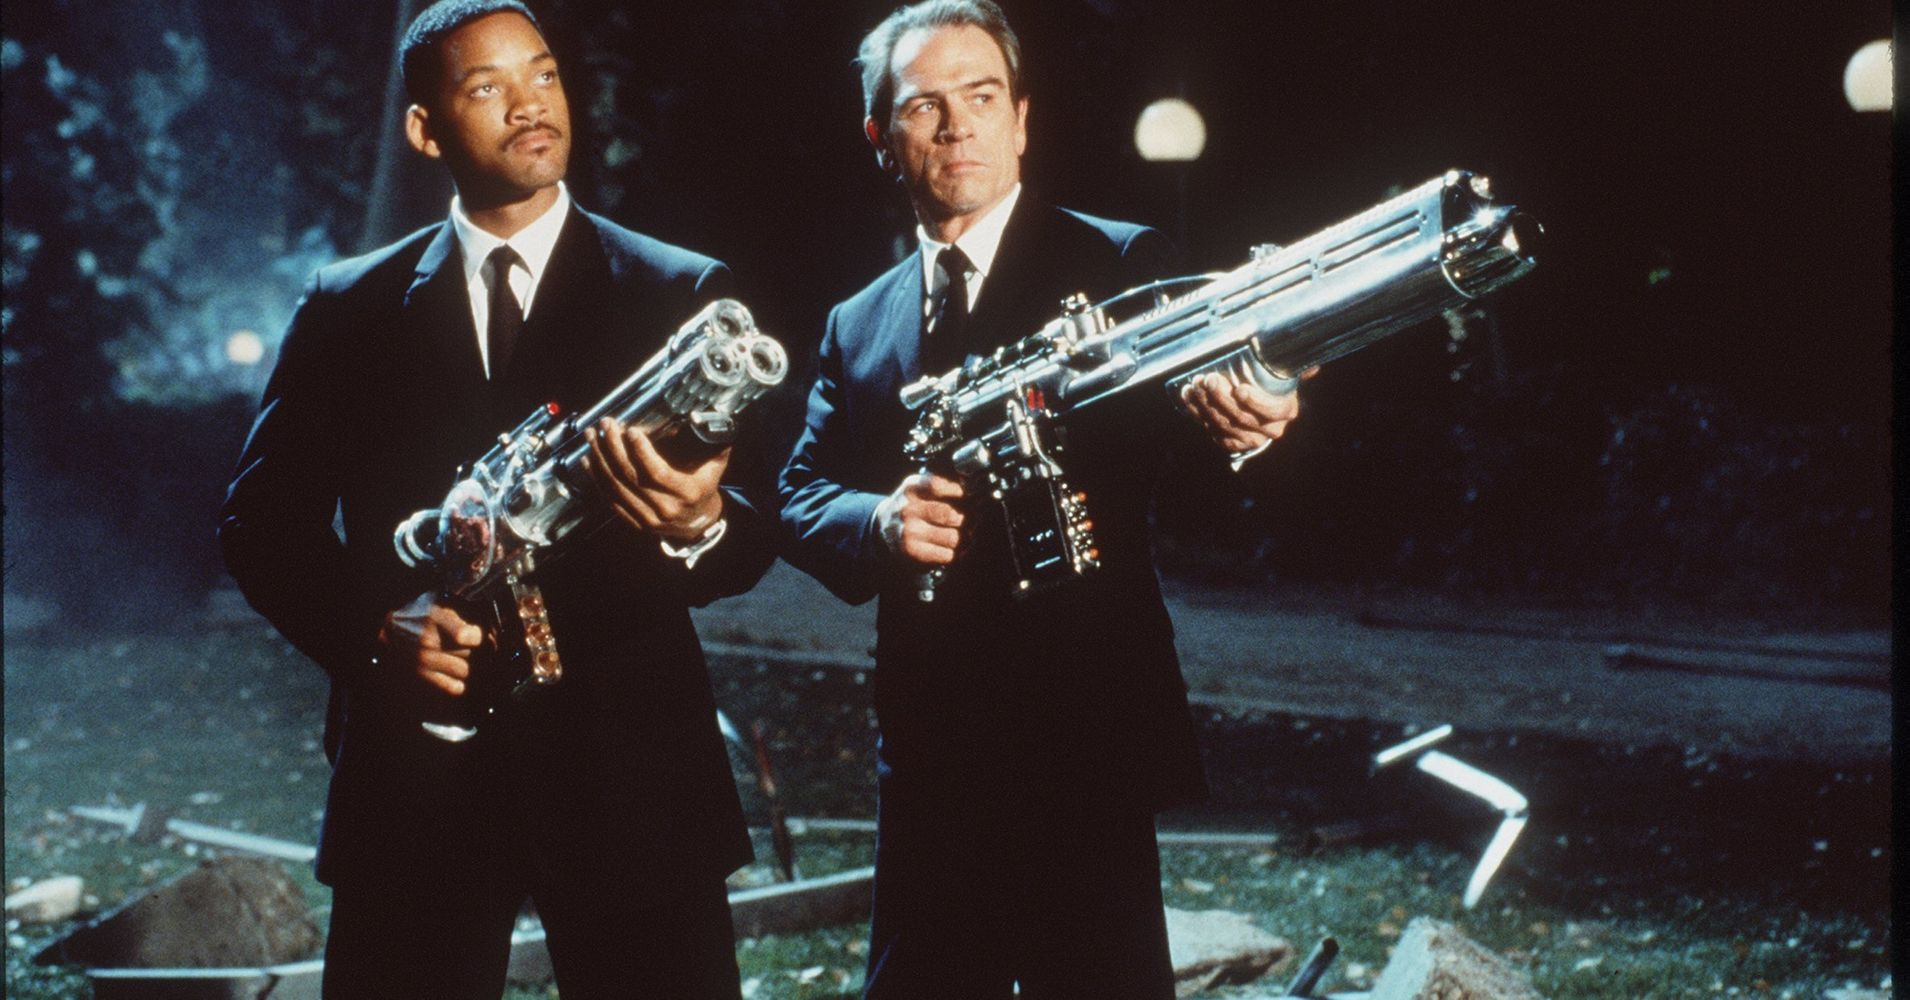 will smith and tommy lee jones relationship with levon